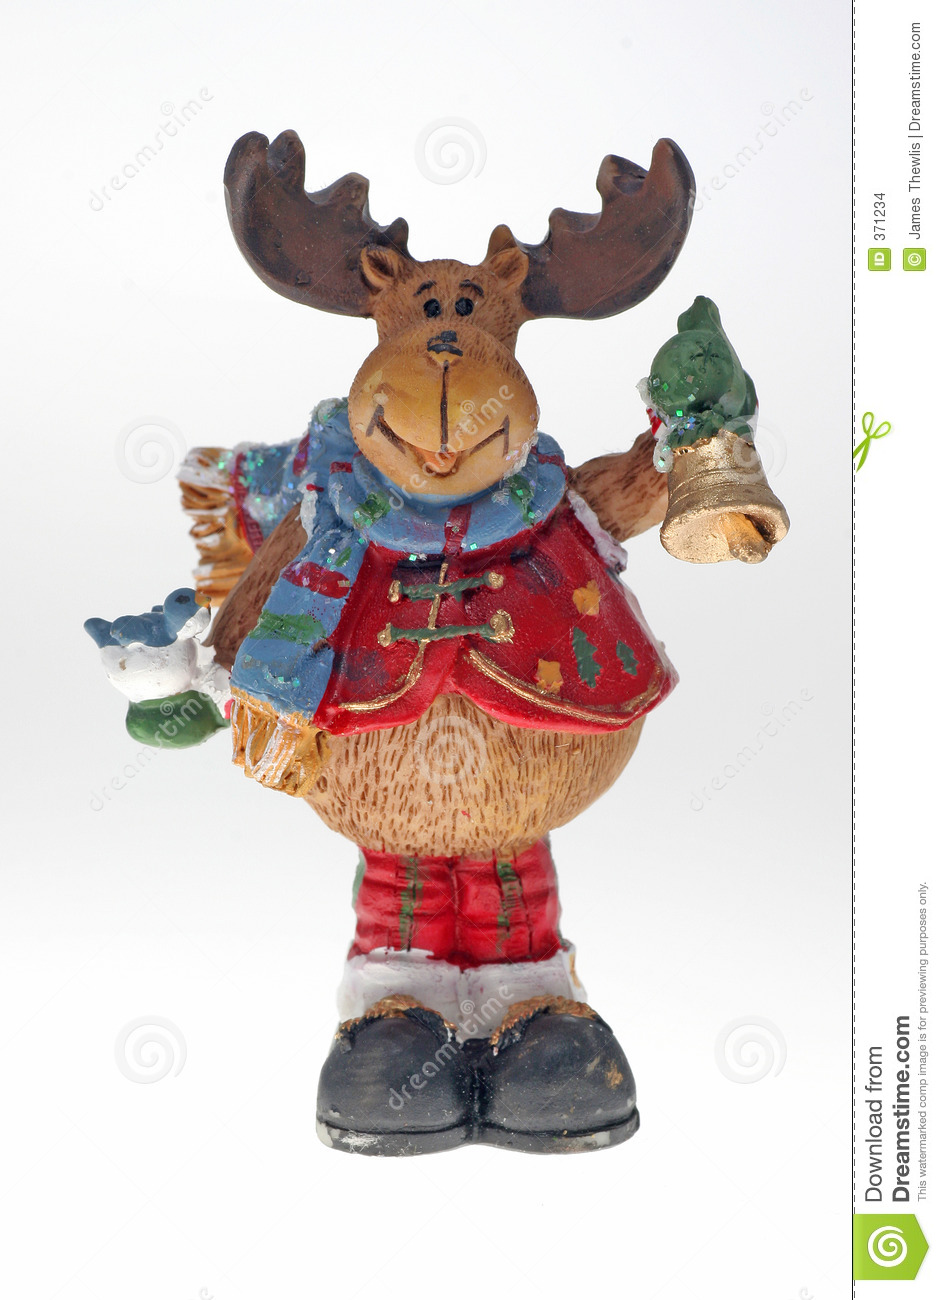 Christmas reindeer decoration stock photo image 371234 for Christmas reindeer decorations